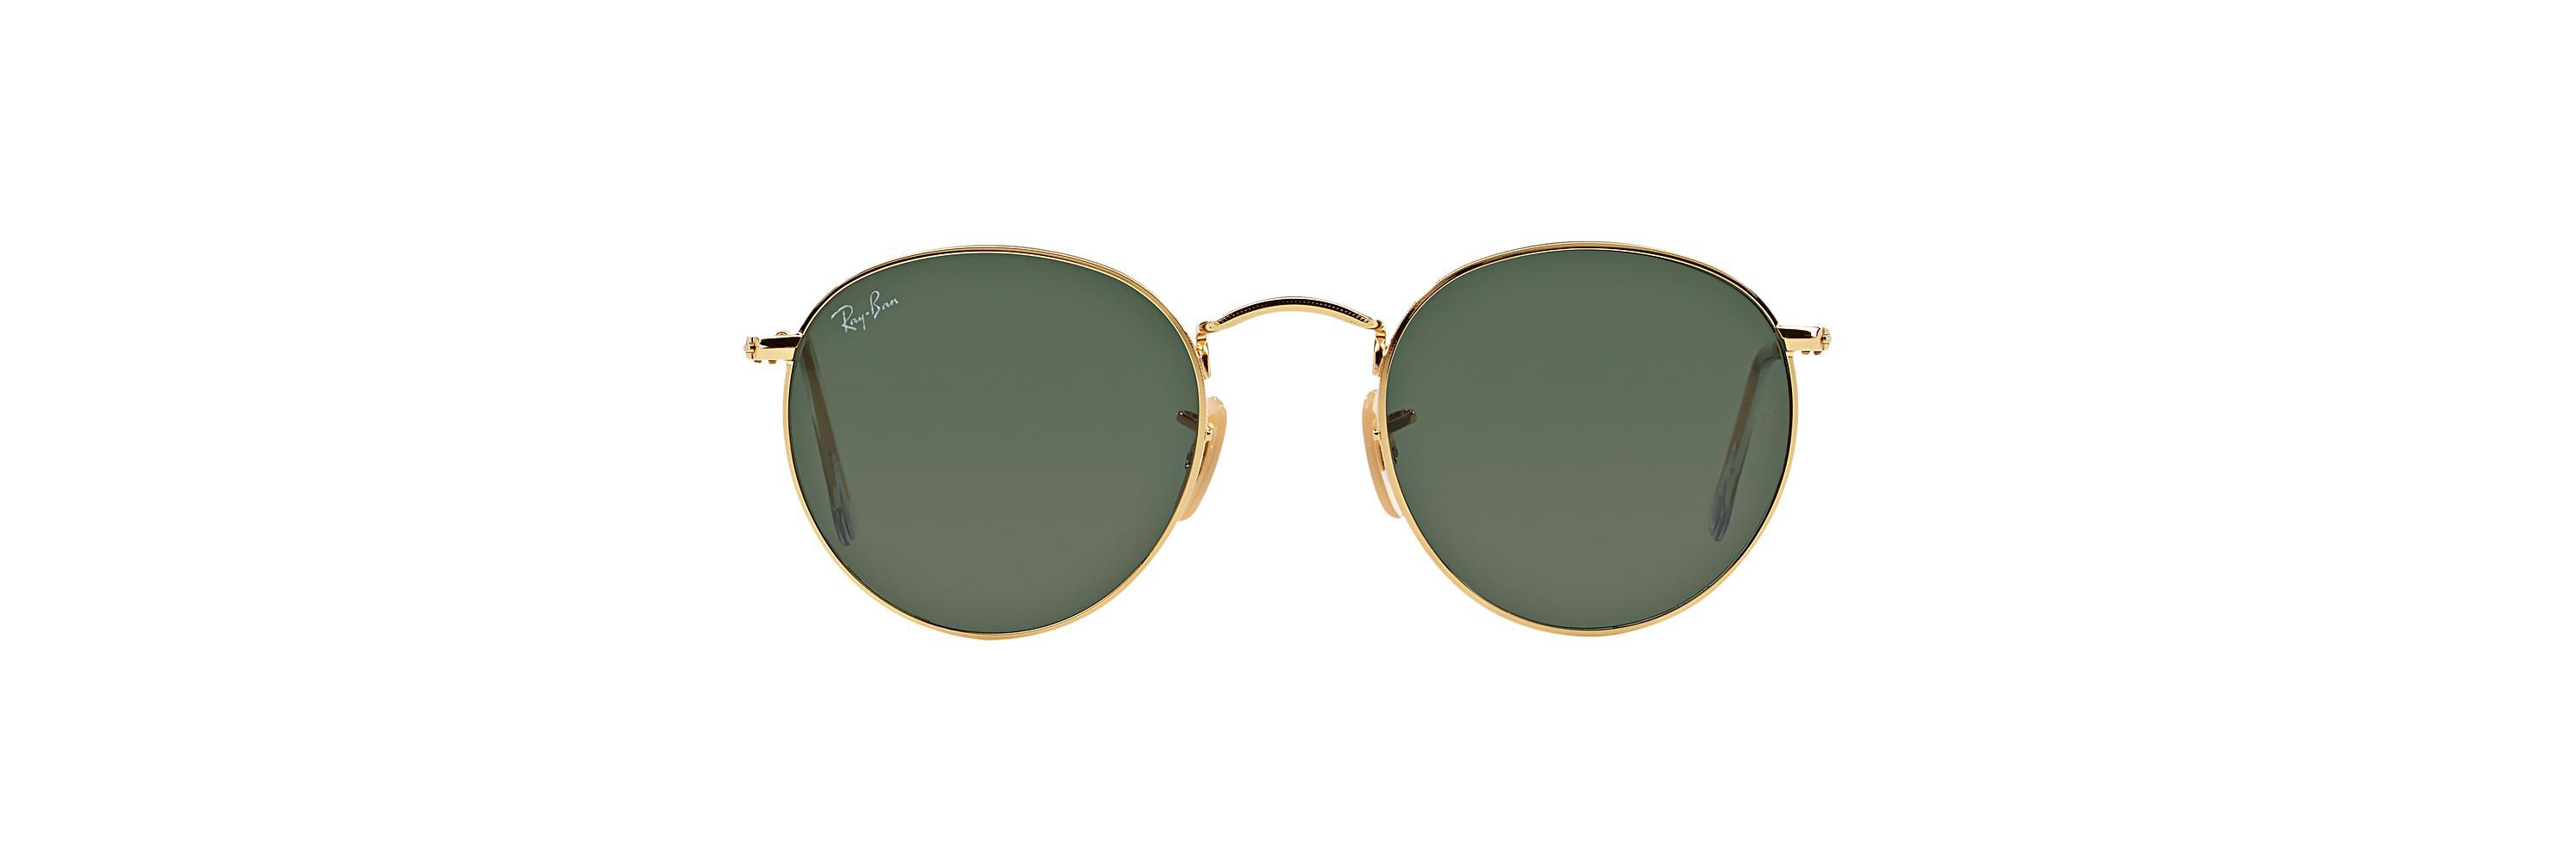 1526c8c804 ... canada ray ban. mens natural rb3447 50 round metal. 153 from sunglass  hut price ...